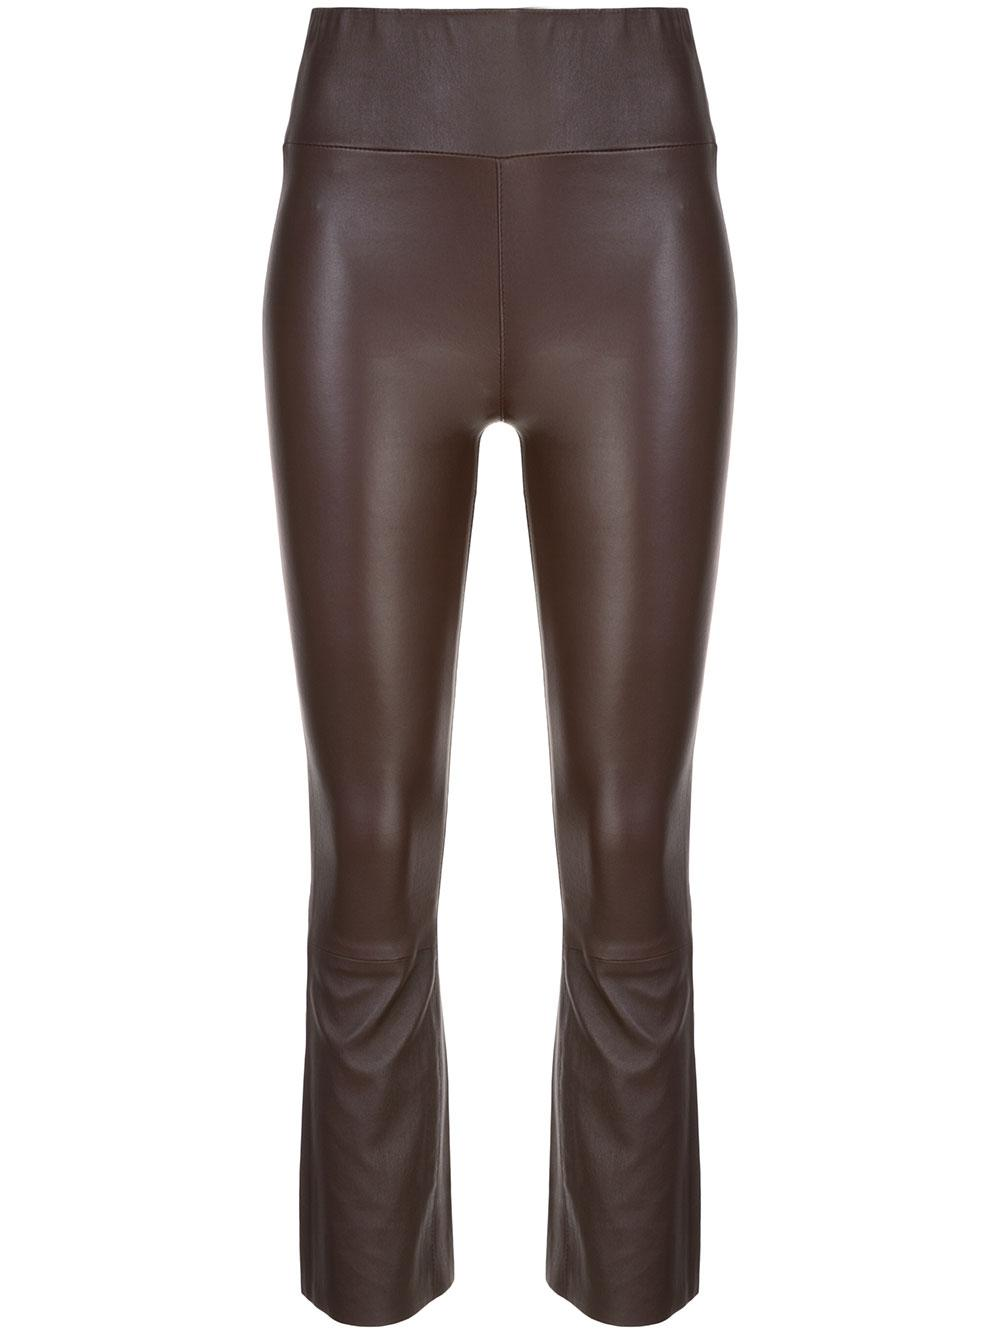 Leather High Waist Crop Flare Legging